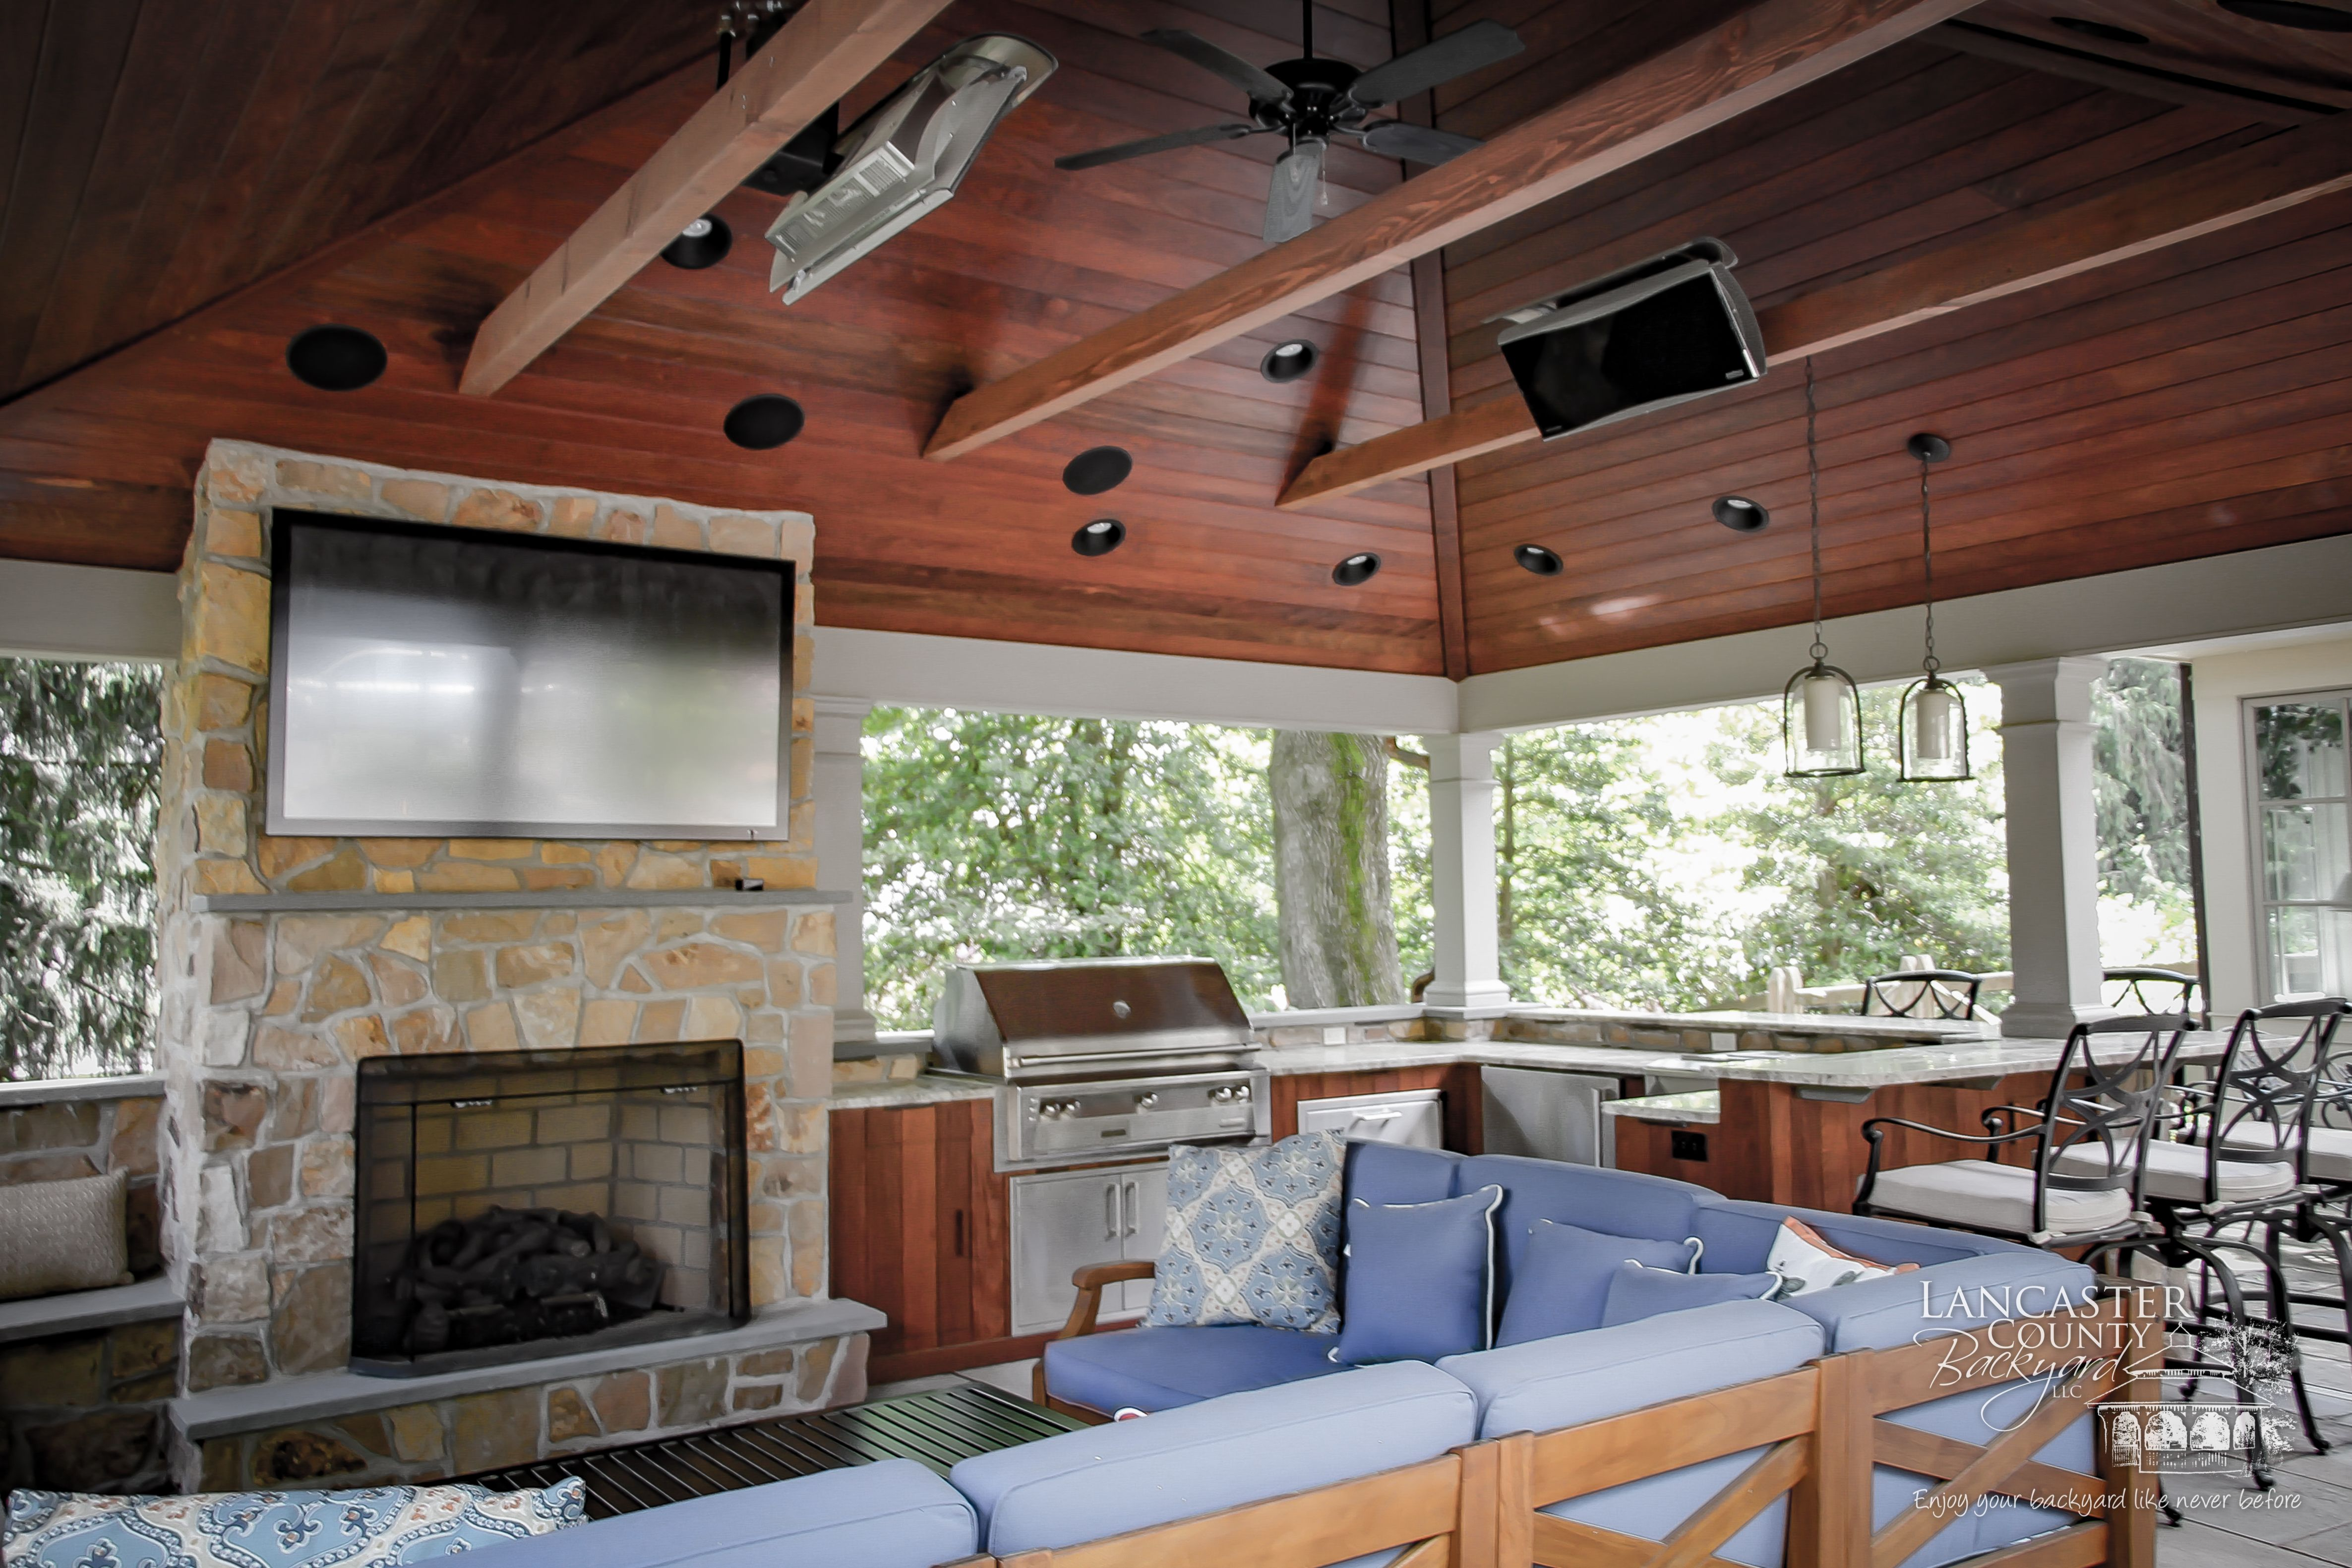 Fireplace, Kitchen, and Entertainment in High End Backyard Pavilion